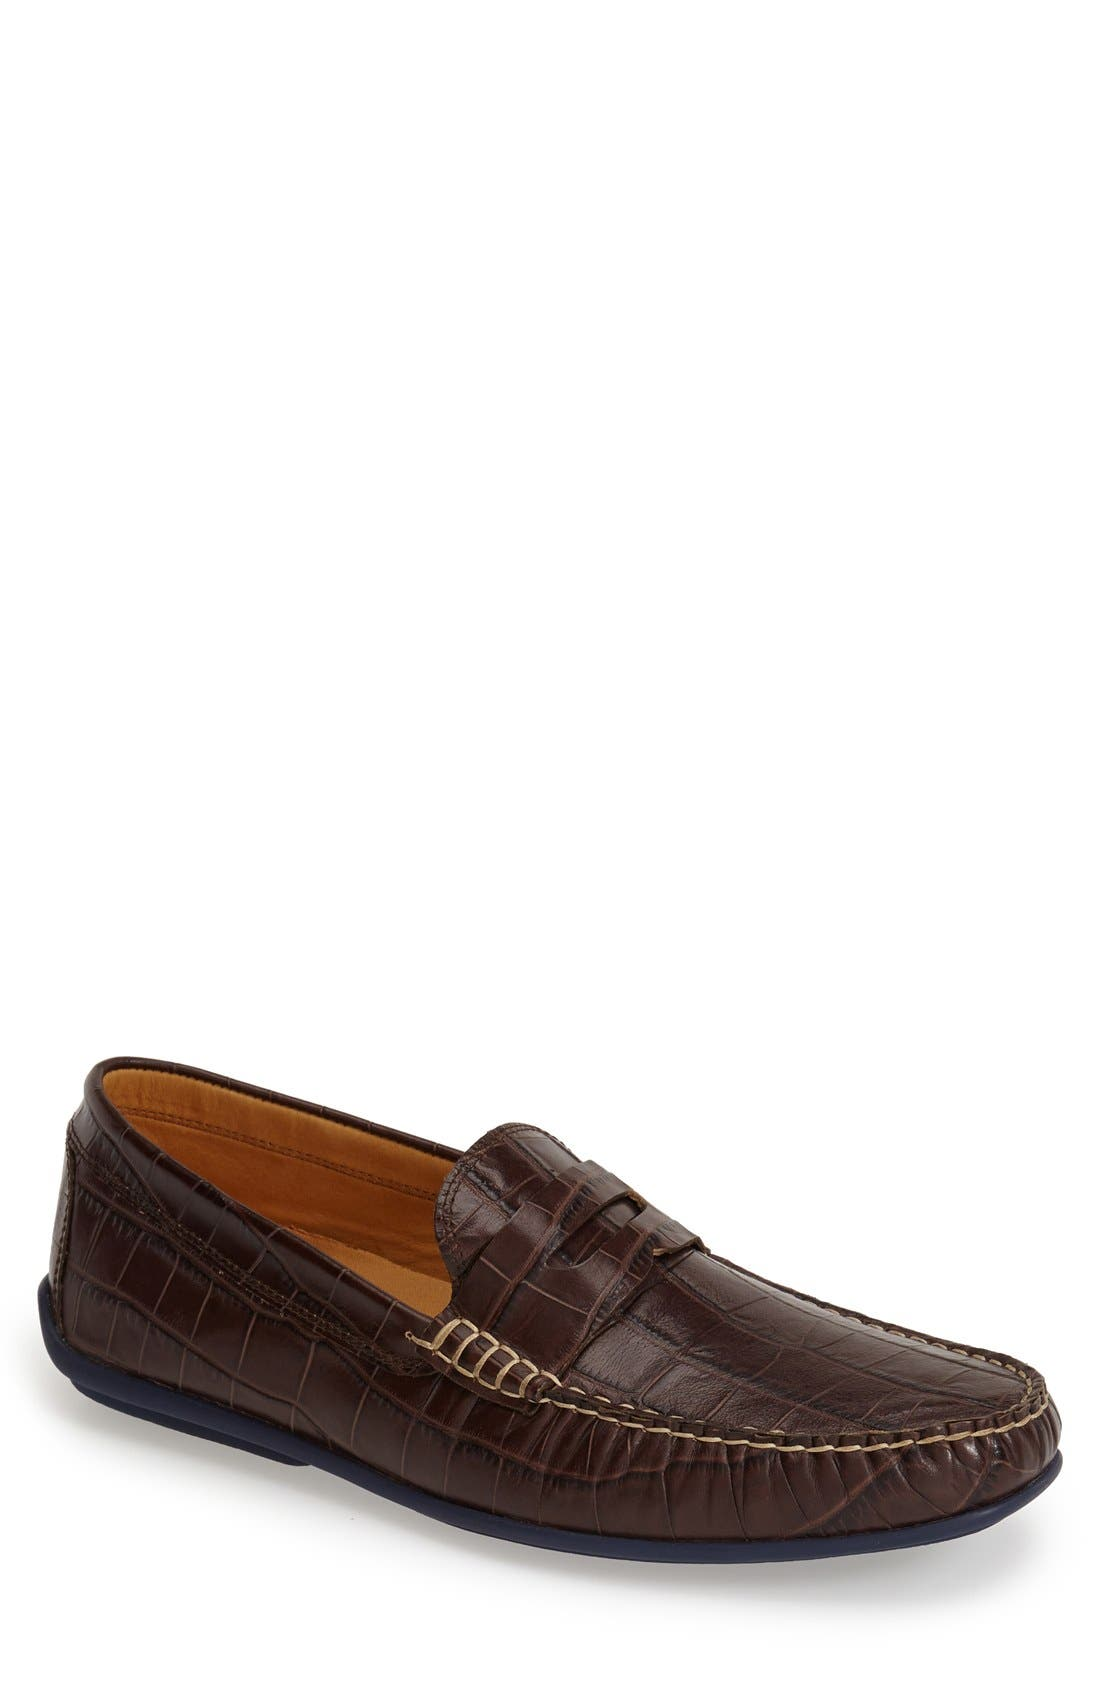 Austen Heller 'Waverly' Leather Penny Loafer (Men)